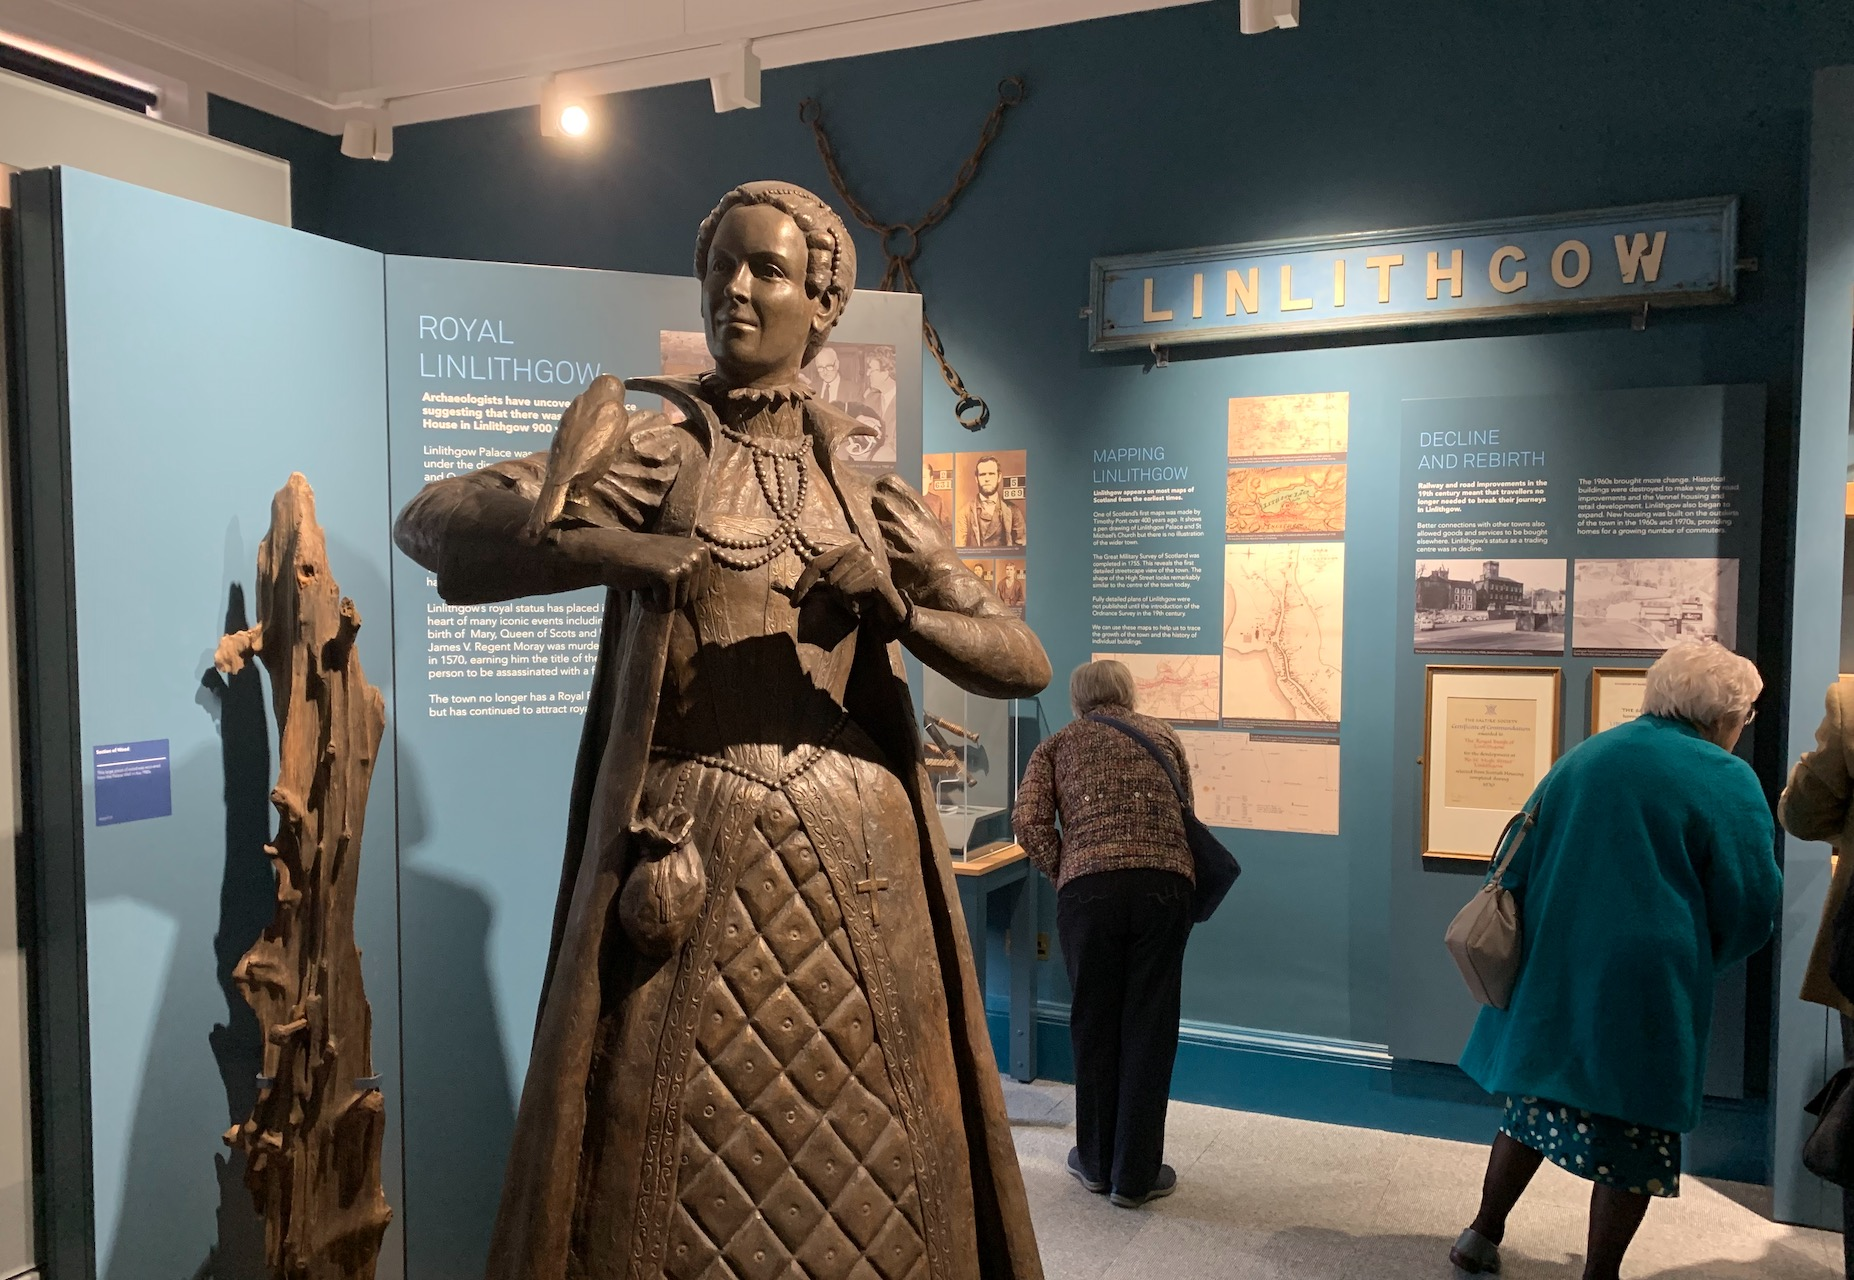 About OUR MUSEUM - Find out about our volunteer-run museum and our own history.